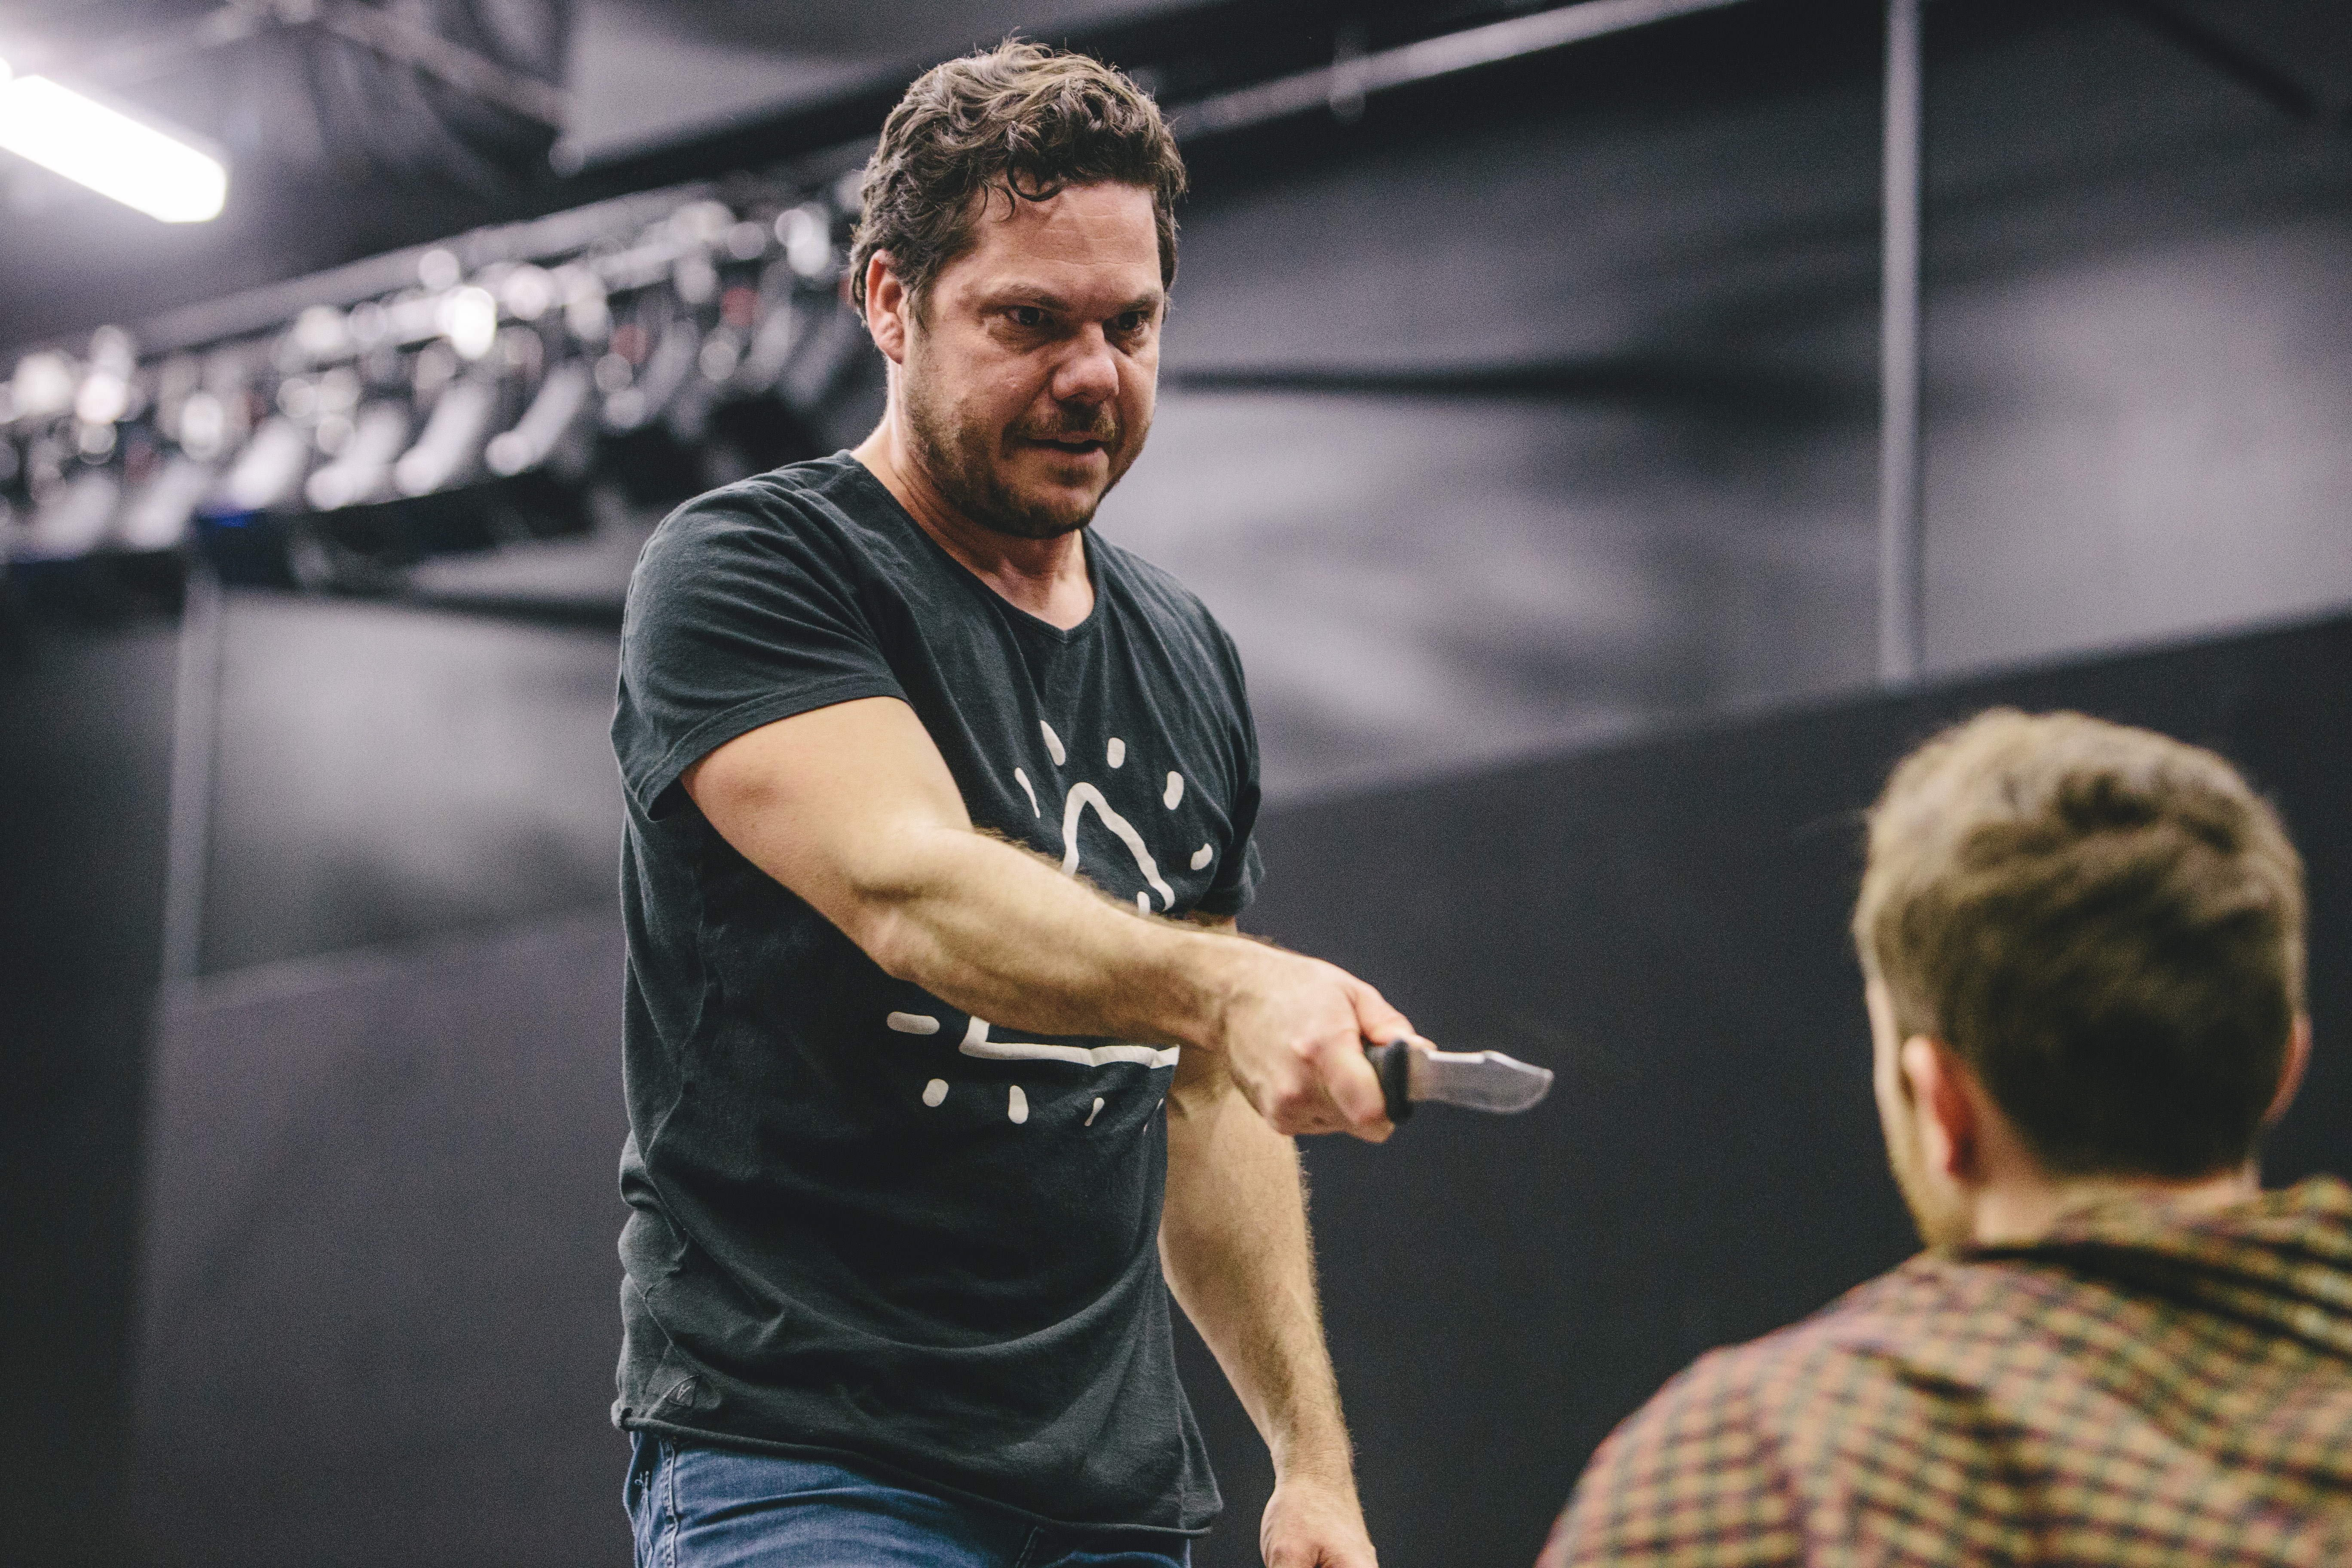 Jason Klarwein in Macbeth. Photograph provided by the Queensland Theatre Company.